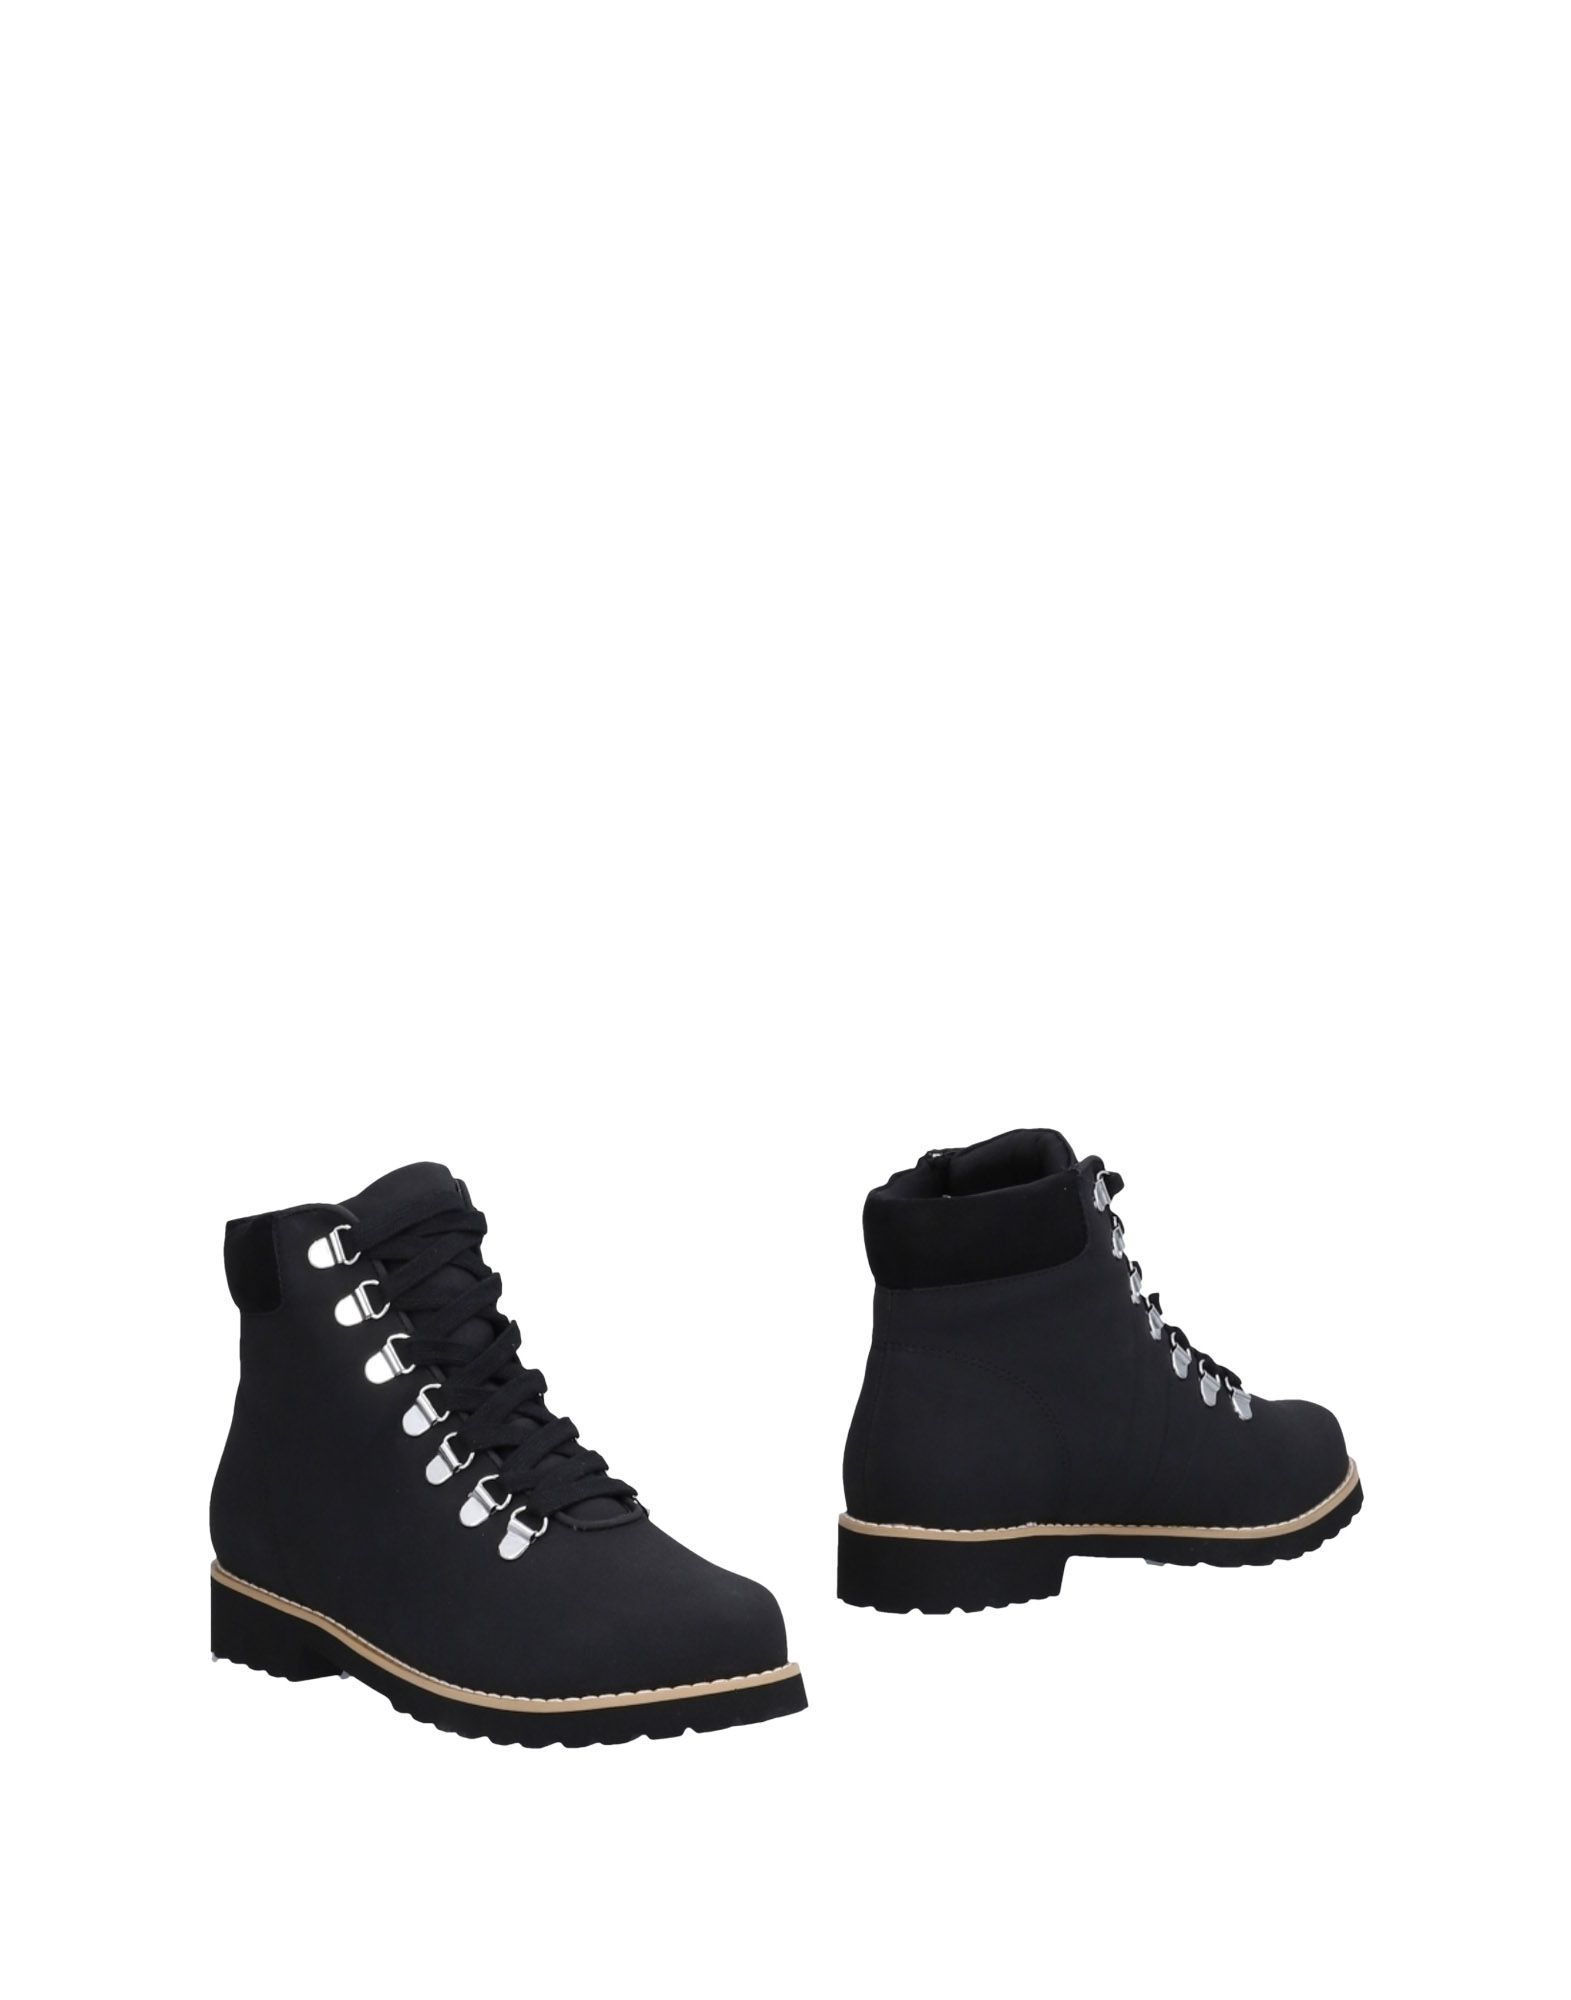 Fornarina Fornarina Ankle Boot - Women Fornarina Fornarina Ankle Boots online on  Canada - 11493822KR 7bf0fa